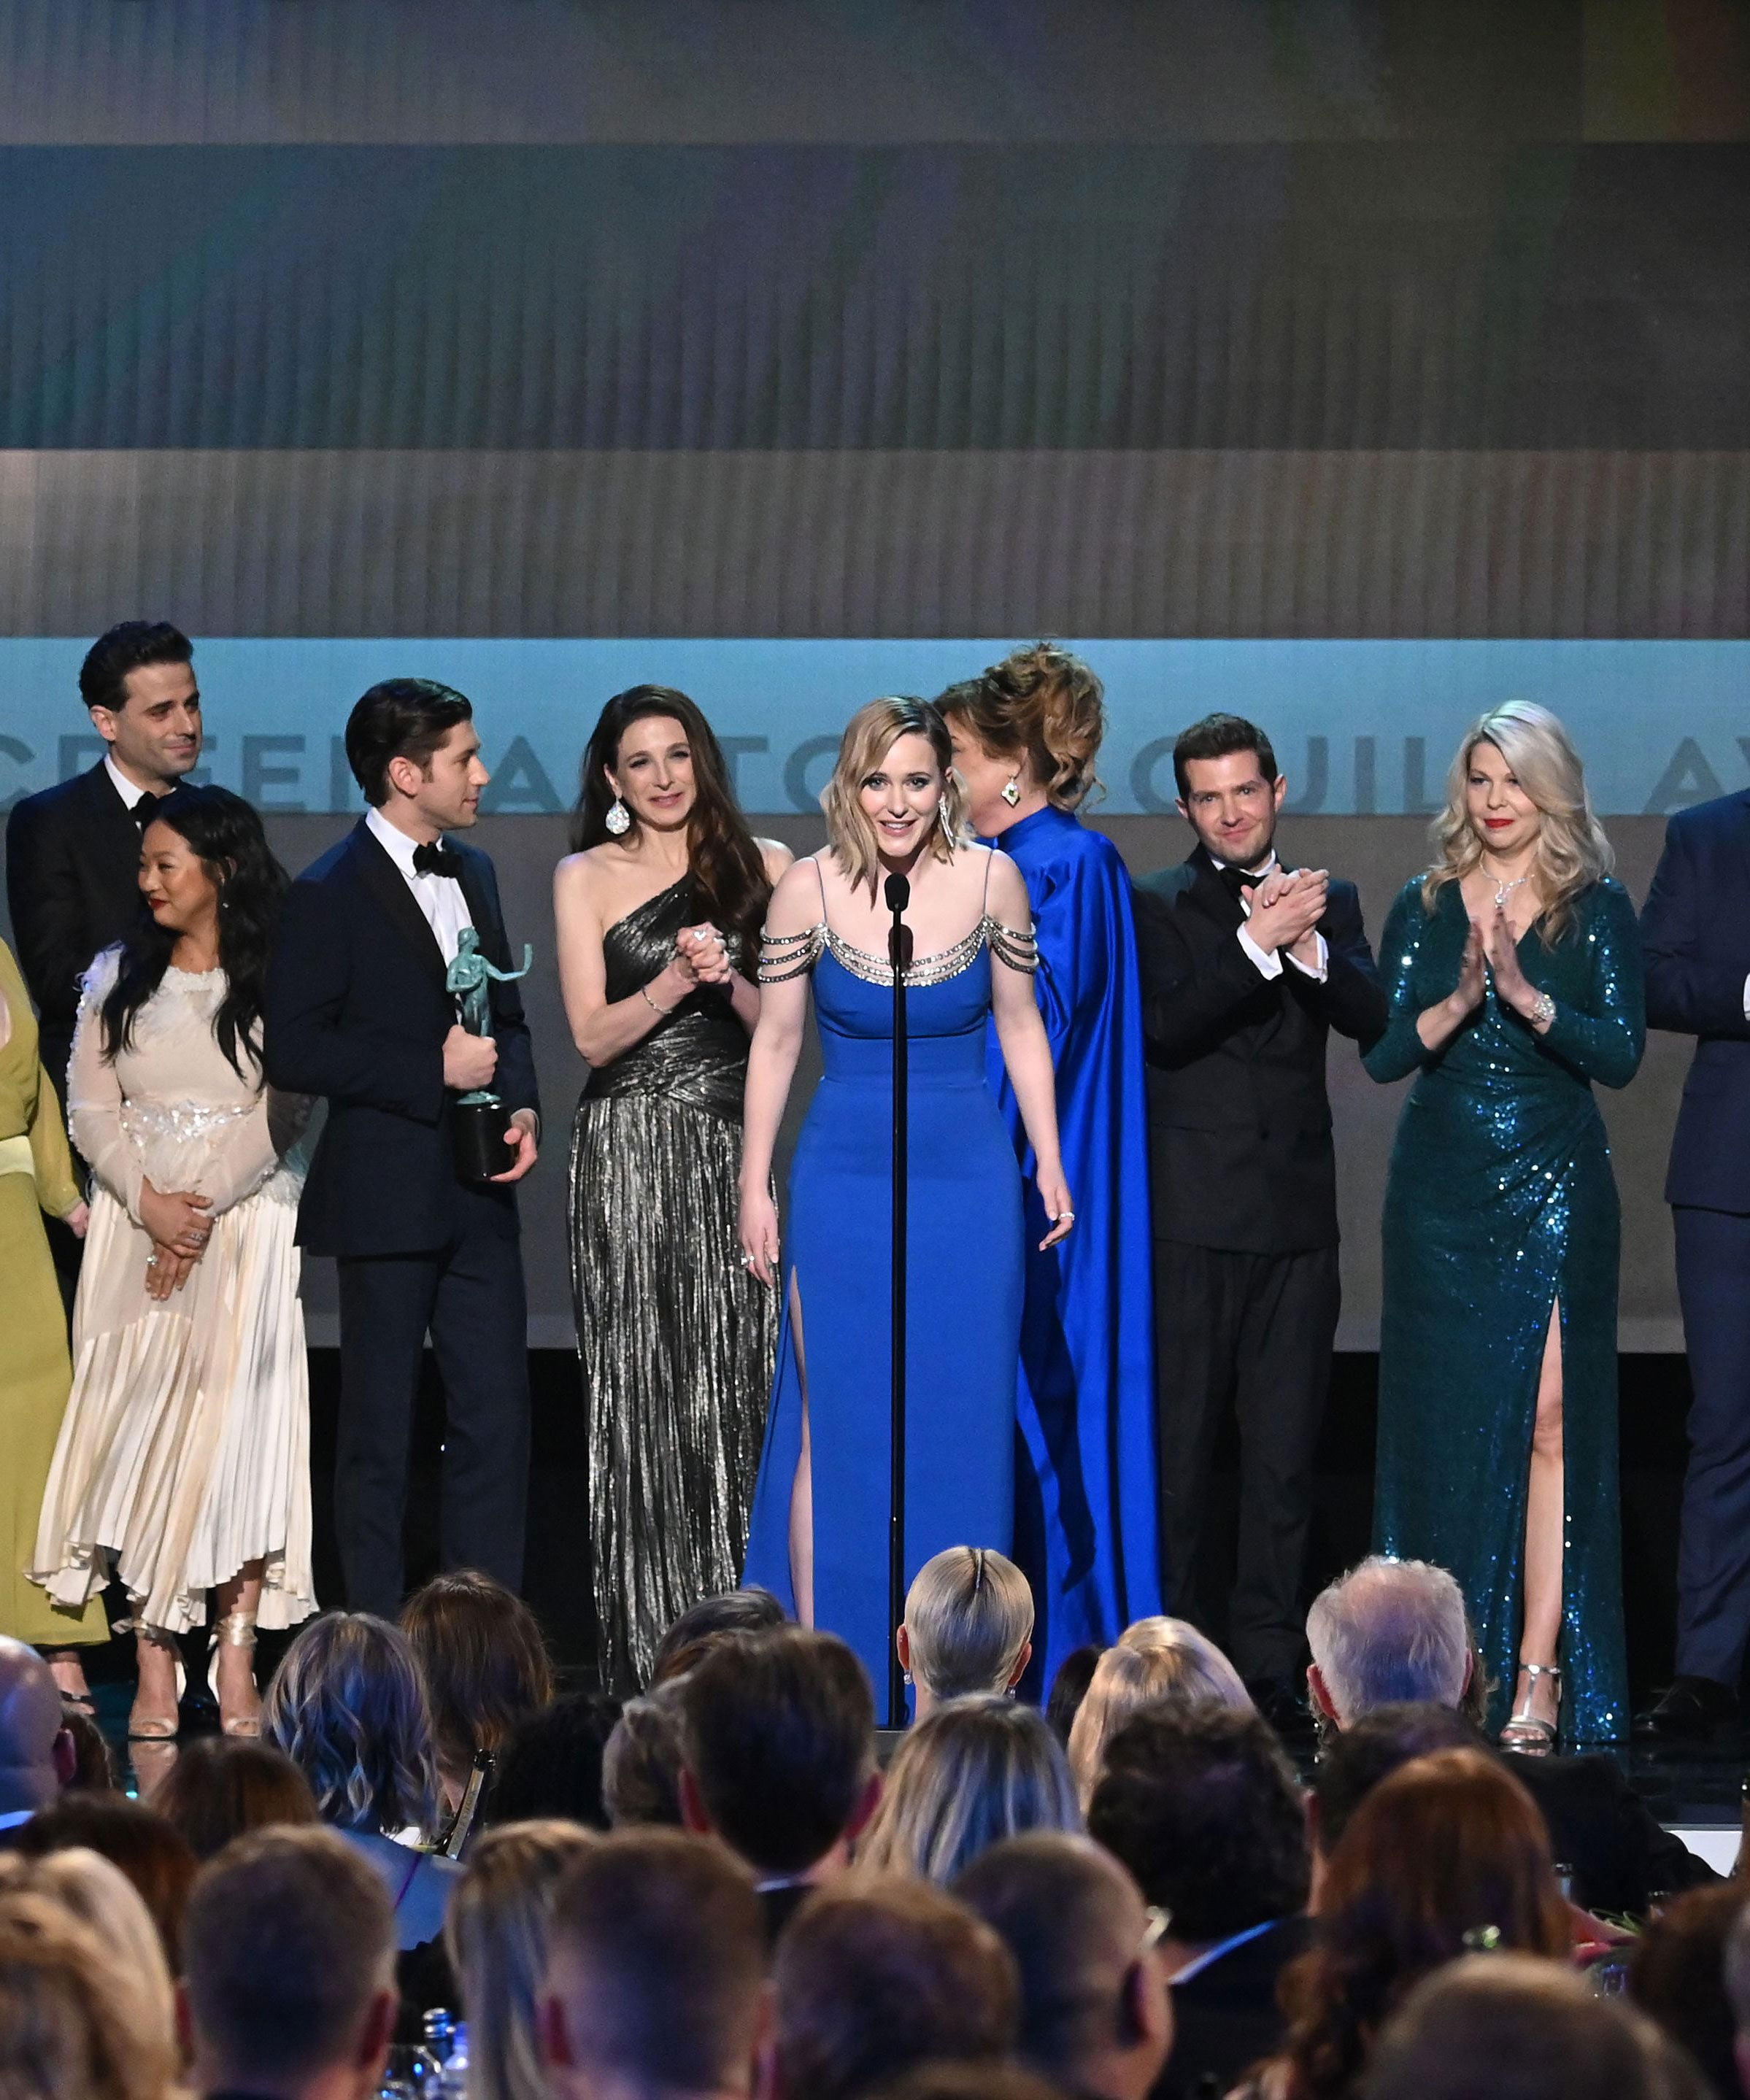 Marvelous Mrs. Maisel Cast Calls Their SAG Win A Mistake In Bleeped-Out Speech